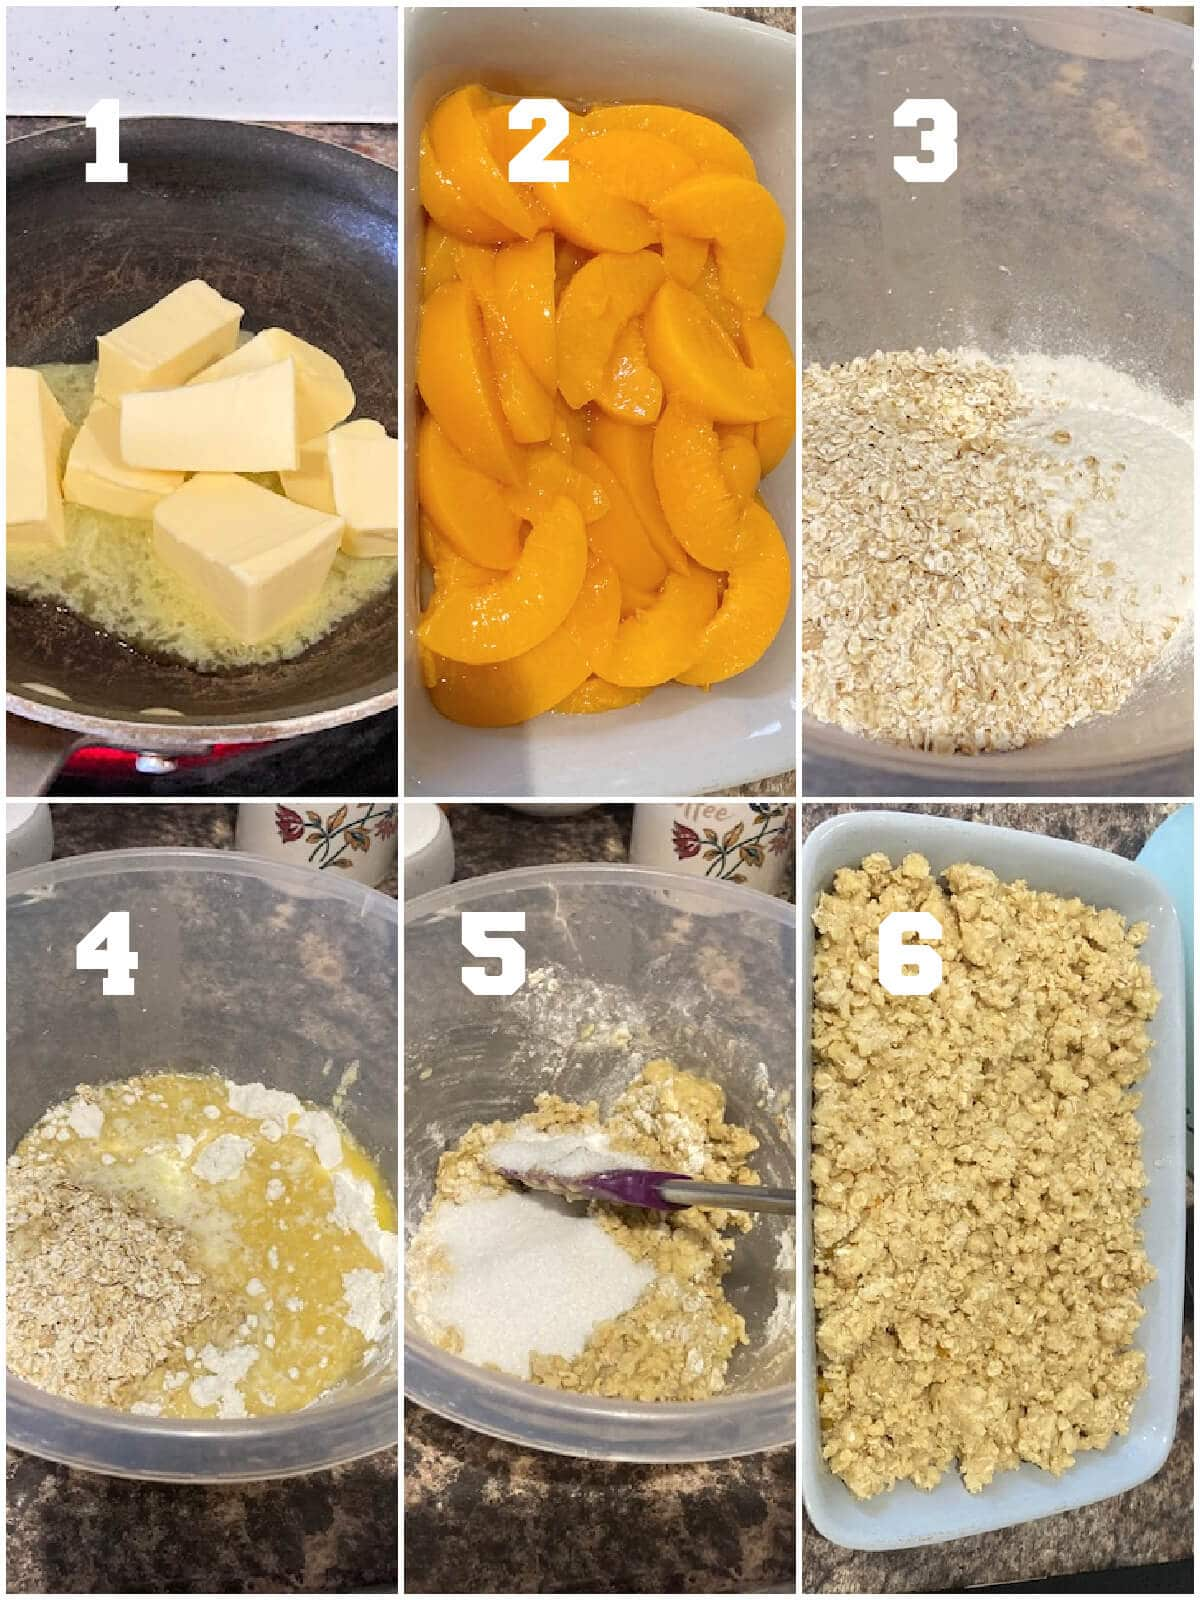 Collage of 6 photos to show how to make canned peach crumble